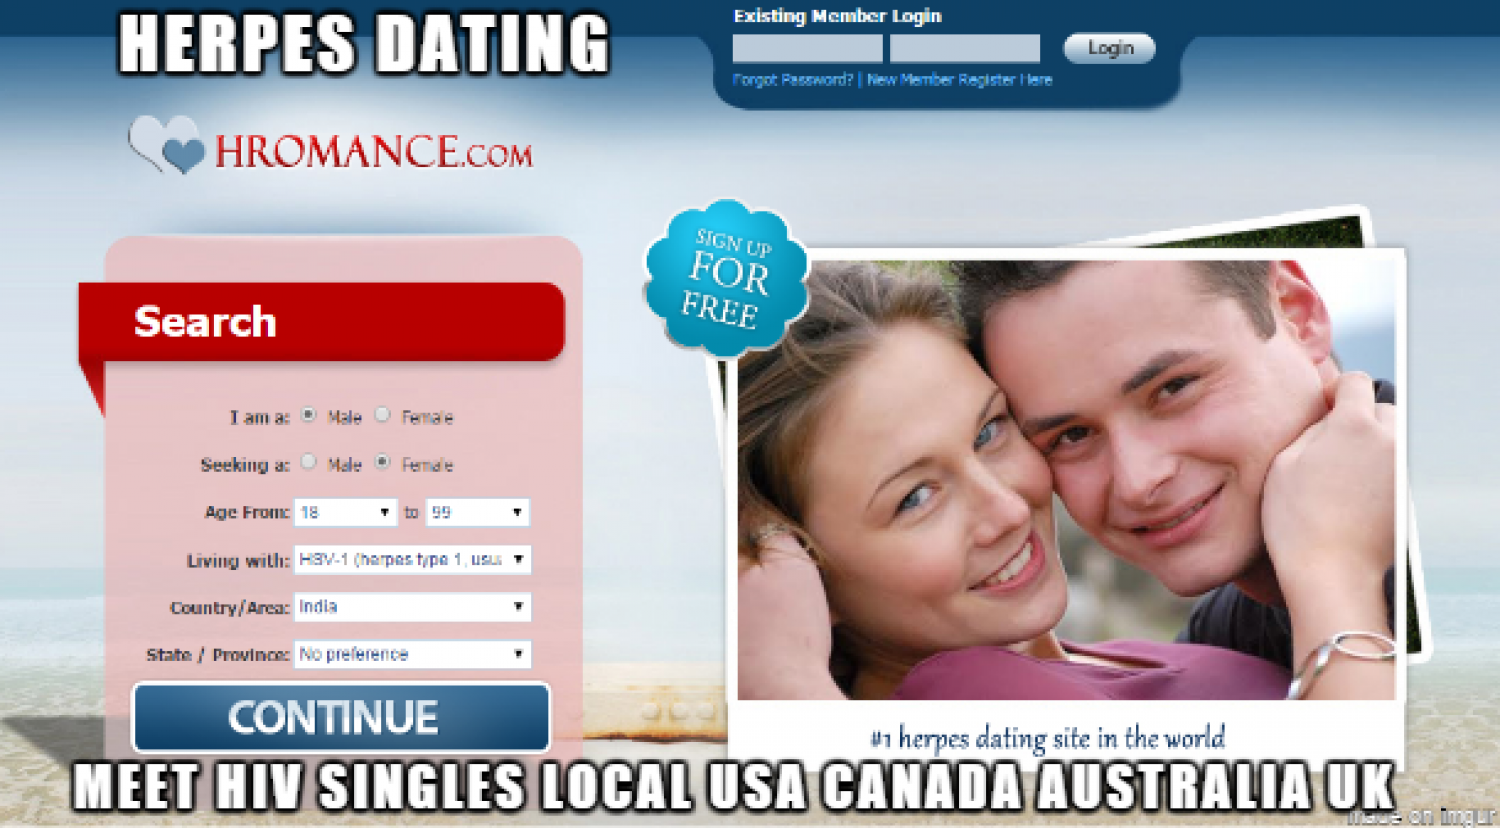 dating herpes singles Herpes dating in il, united states in girum imus nocte et consumimur igni : available only to living with: herpes (not sure the type) message now.